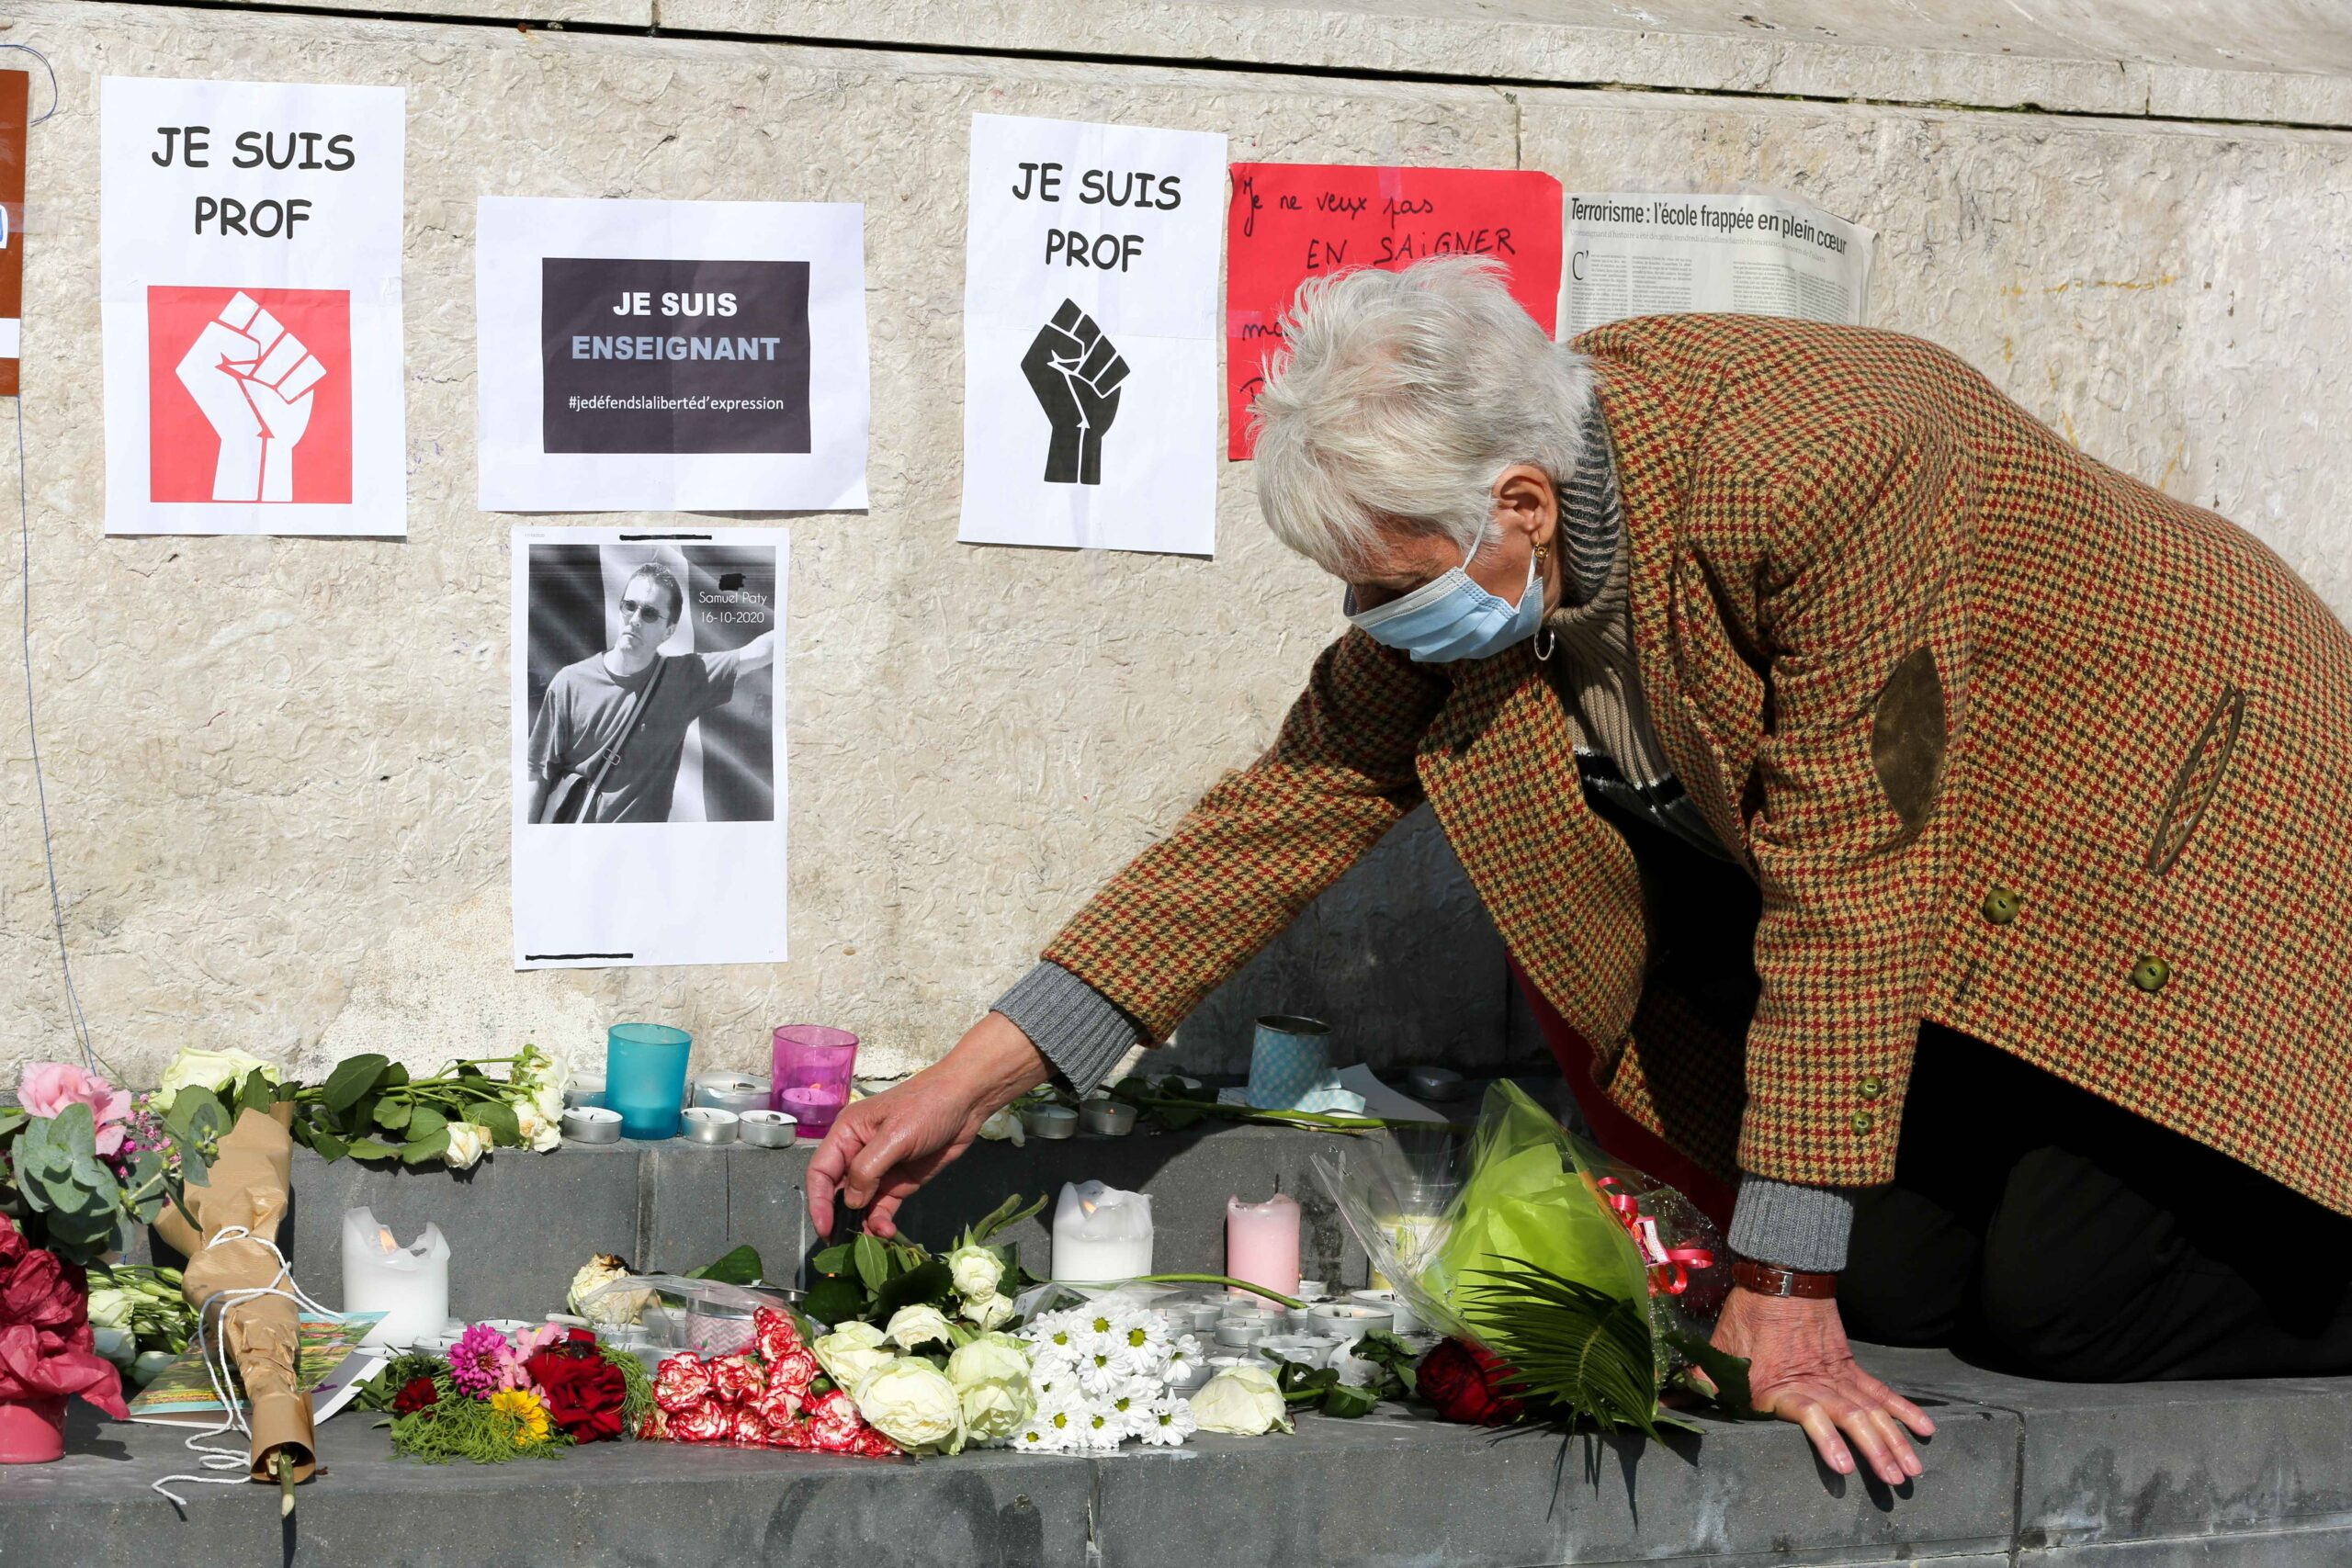 A person places flowers in front of the portrait of history teacher Samuel Paty as people gather on Place de la Republique in Paris on October 18, 2020, two days after he was beheaded by an attacker who was shot dead by policemen. Thousands of people rally